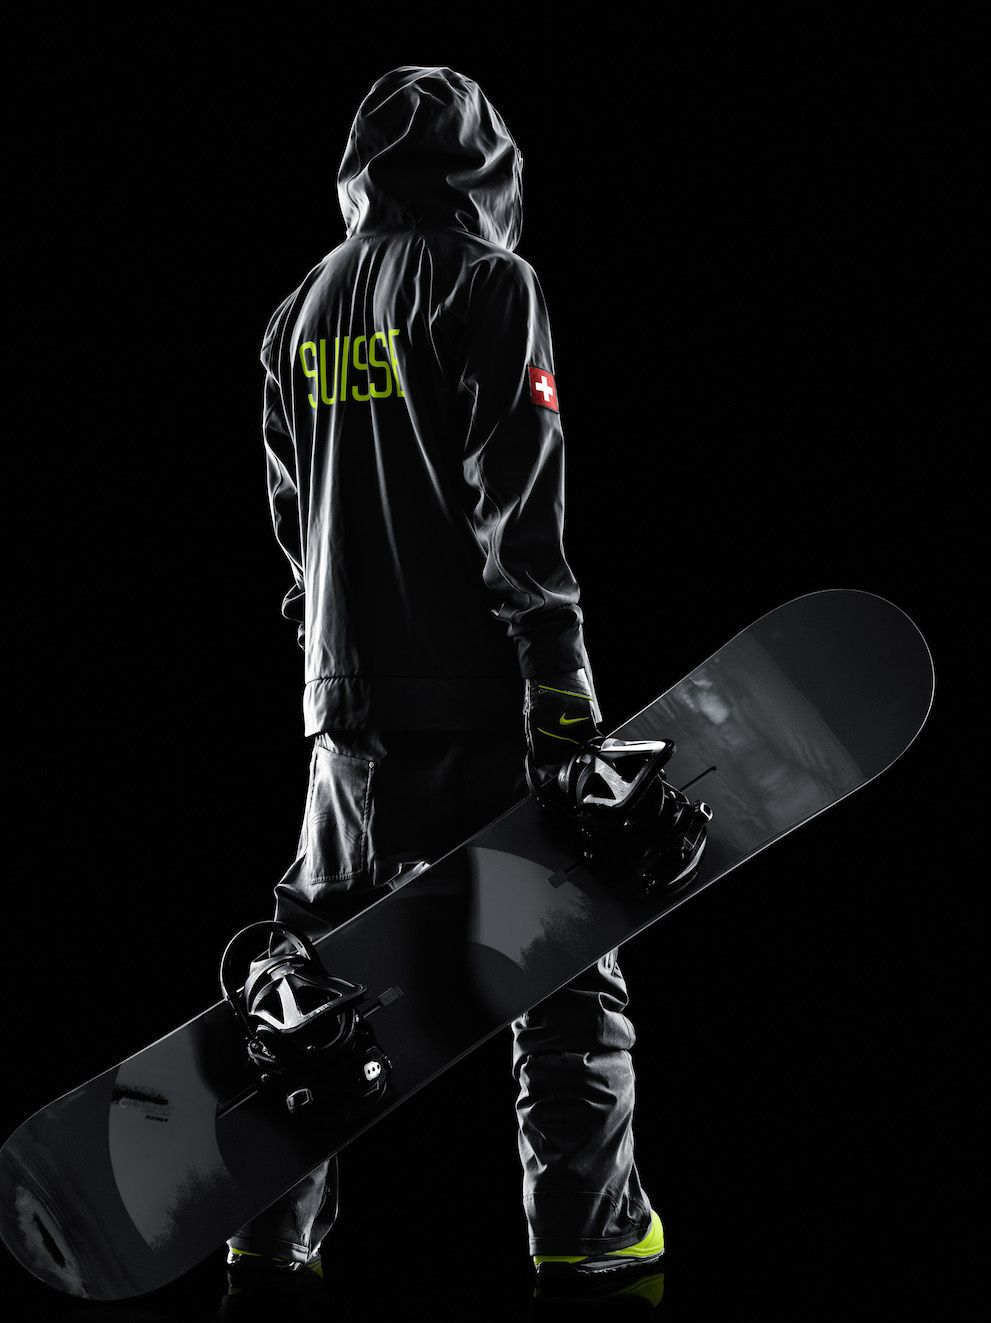 planes Impuro Alrededores  Switzerland: snowboard competition kit, by Nike. #sochi2014 | Best  snowboards, Snowboarding, Snowboarding outfit